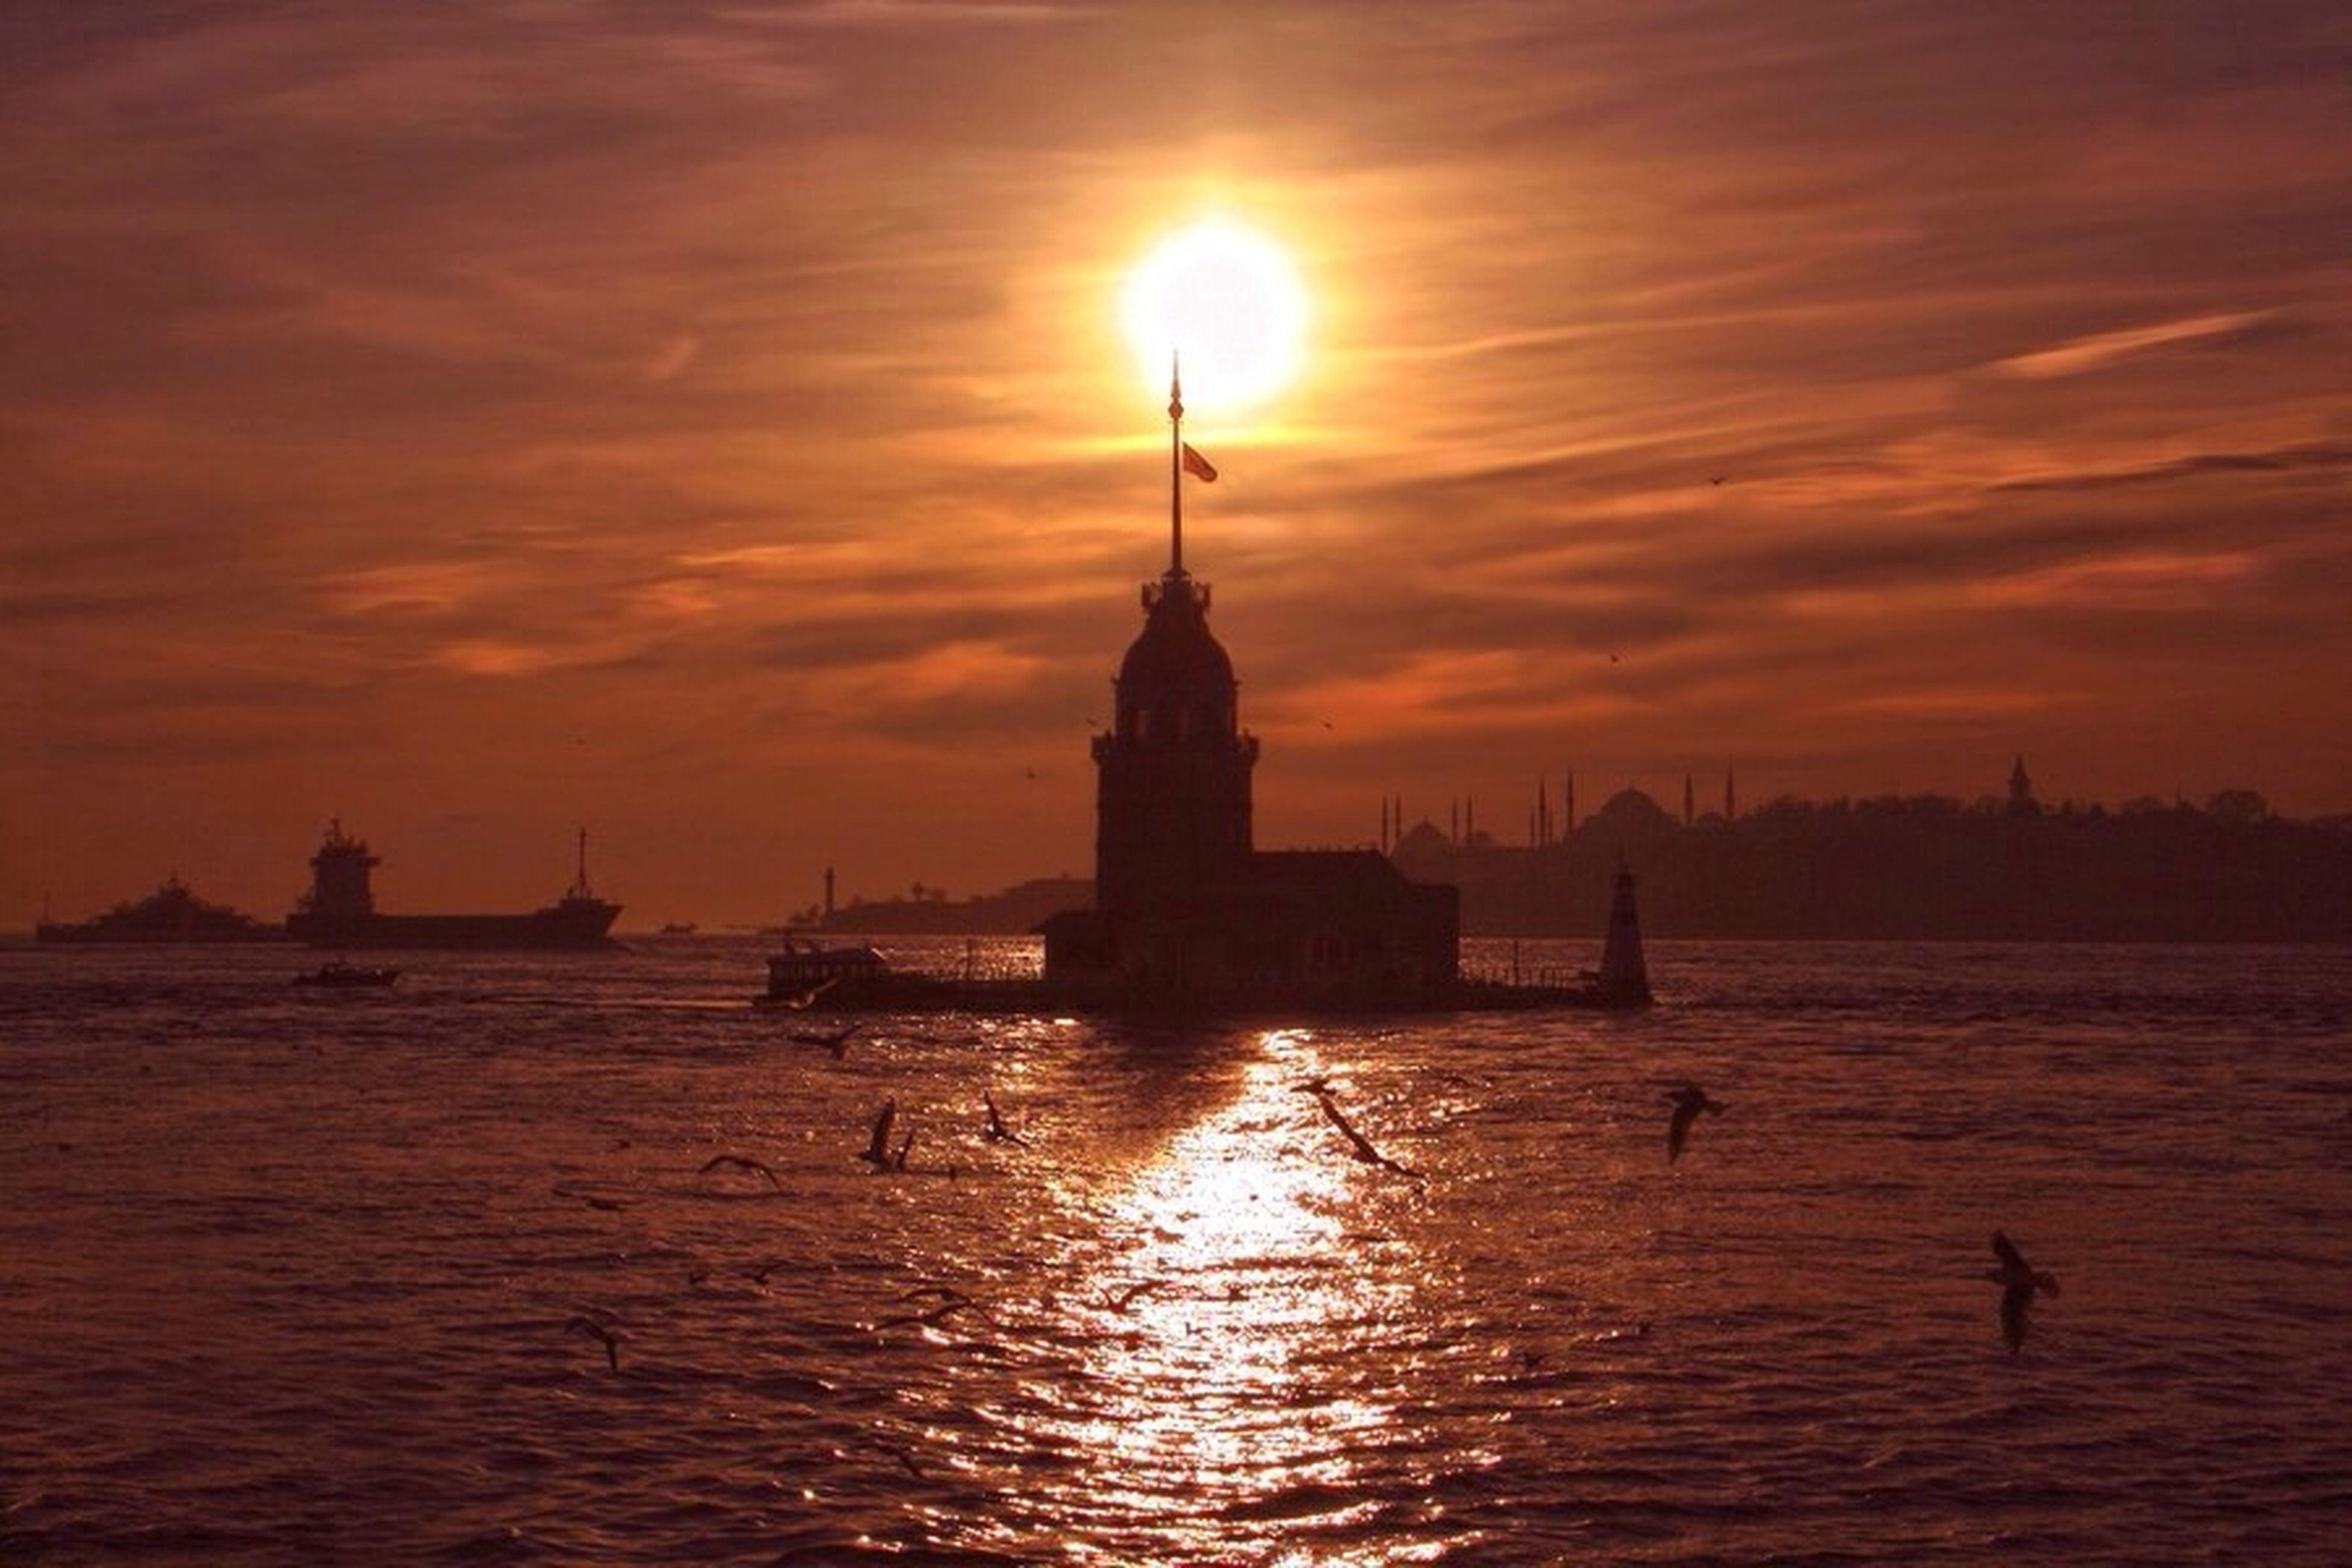 sunset, water, orange color, silhouette, sky, sun, scenics, sea, tranquil scene, tranquility, reflection, beauty in nature, waterfront, idyllic, nature, built structure, cloud - sky, architecture, building exterior, lighthouse